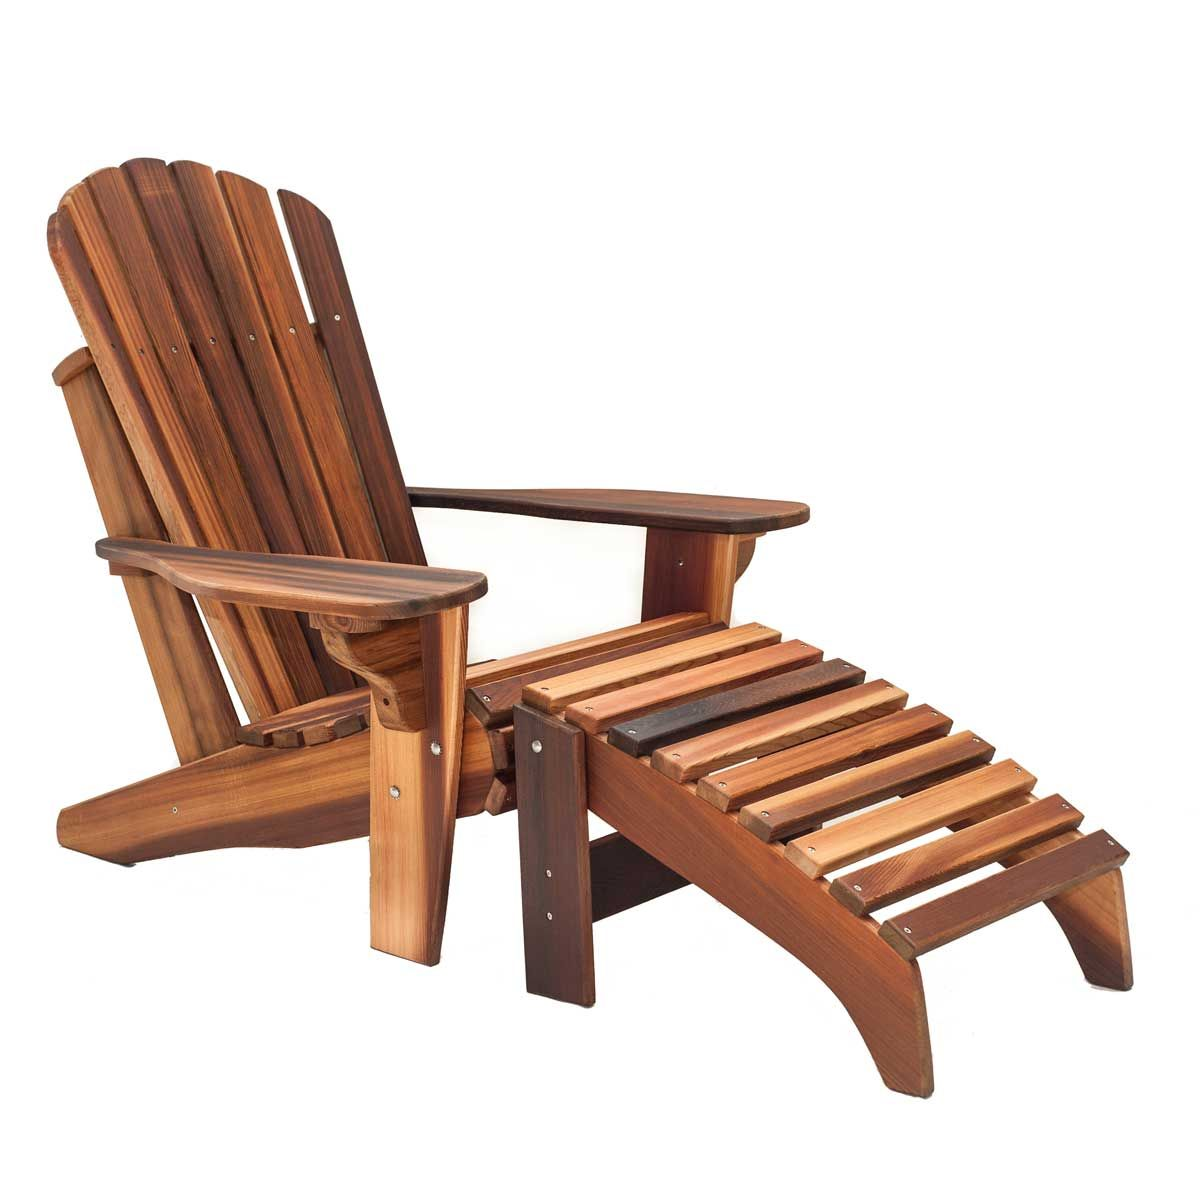 Captivating Adirondack Chair With Footrest